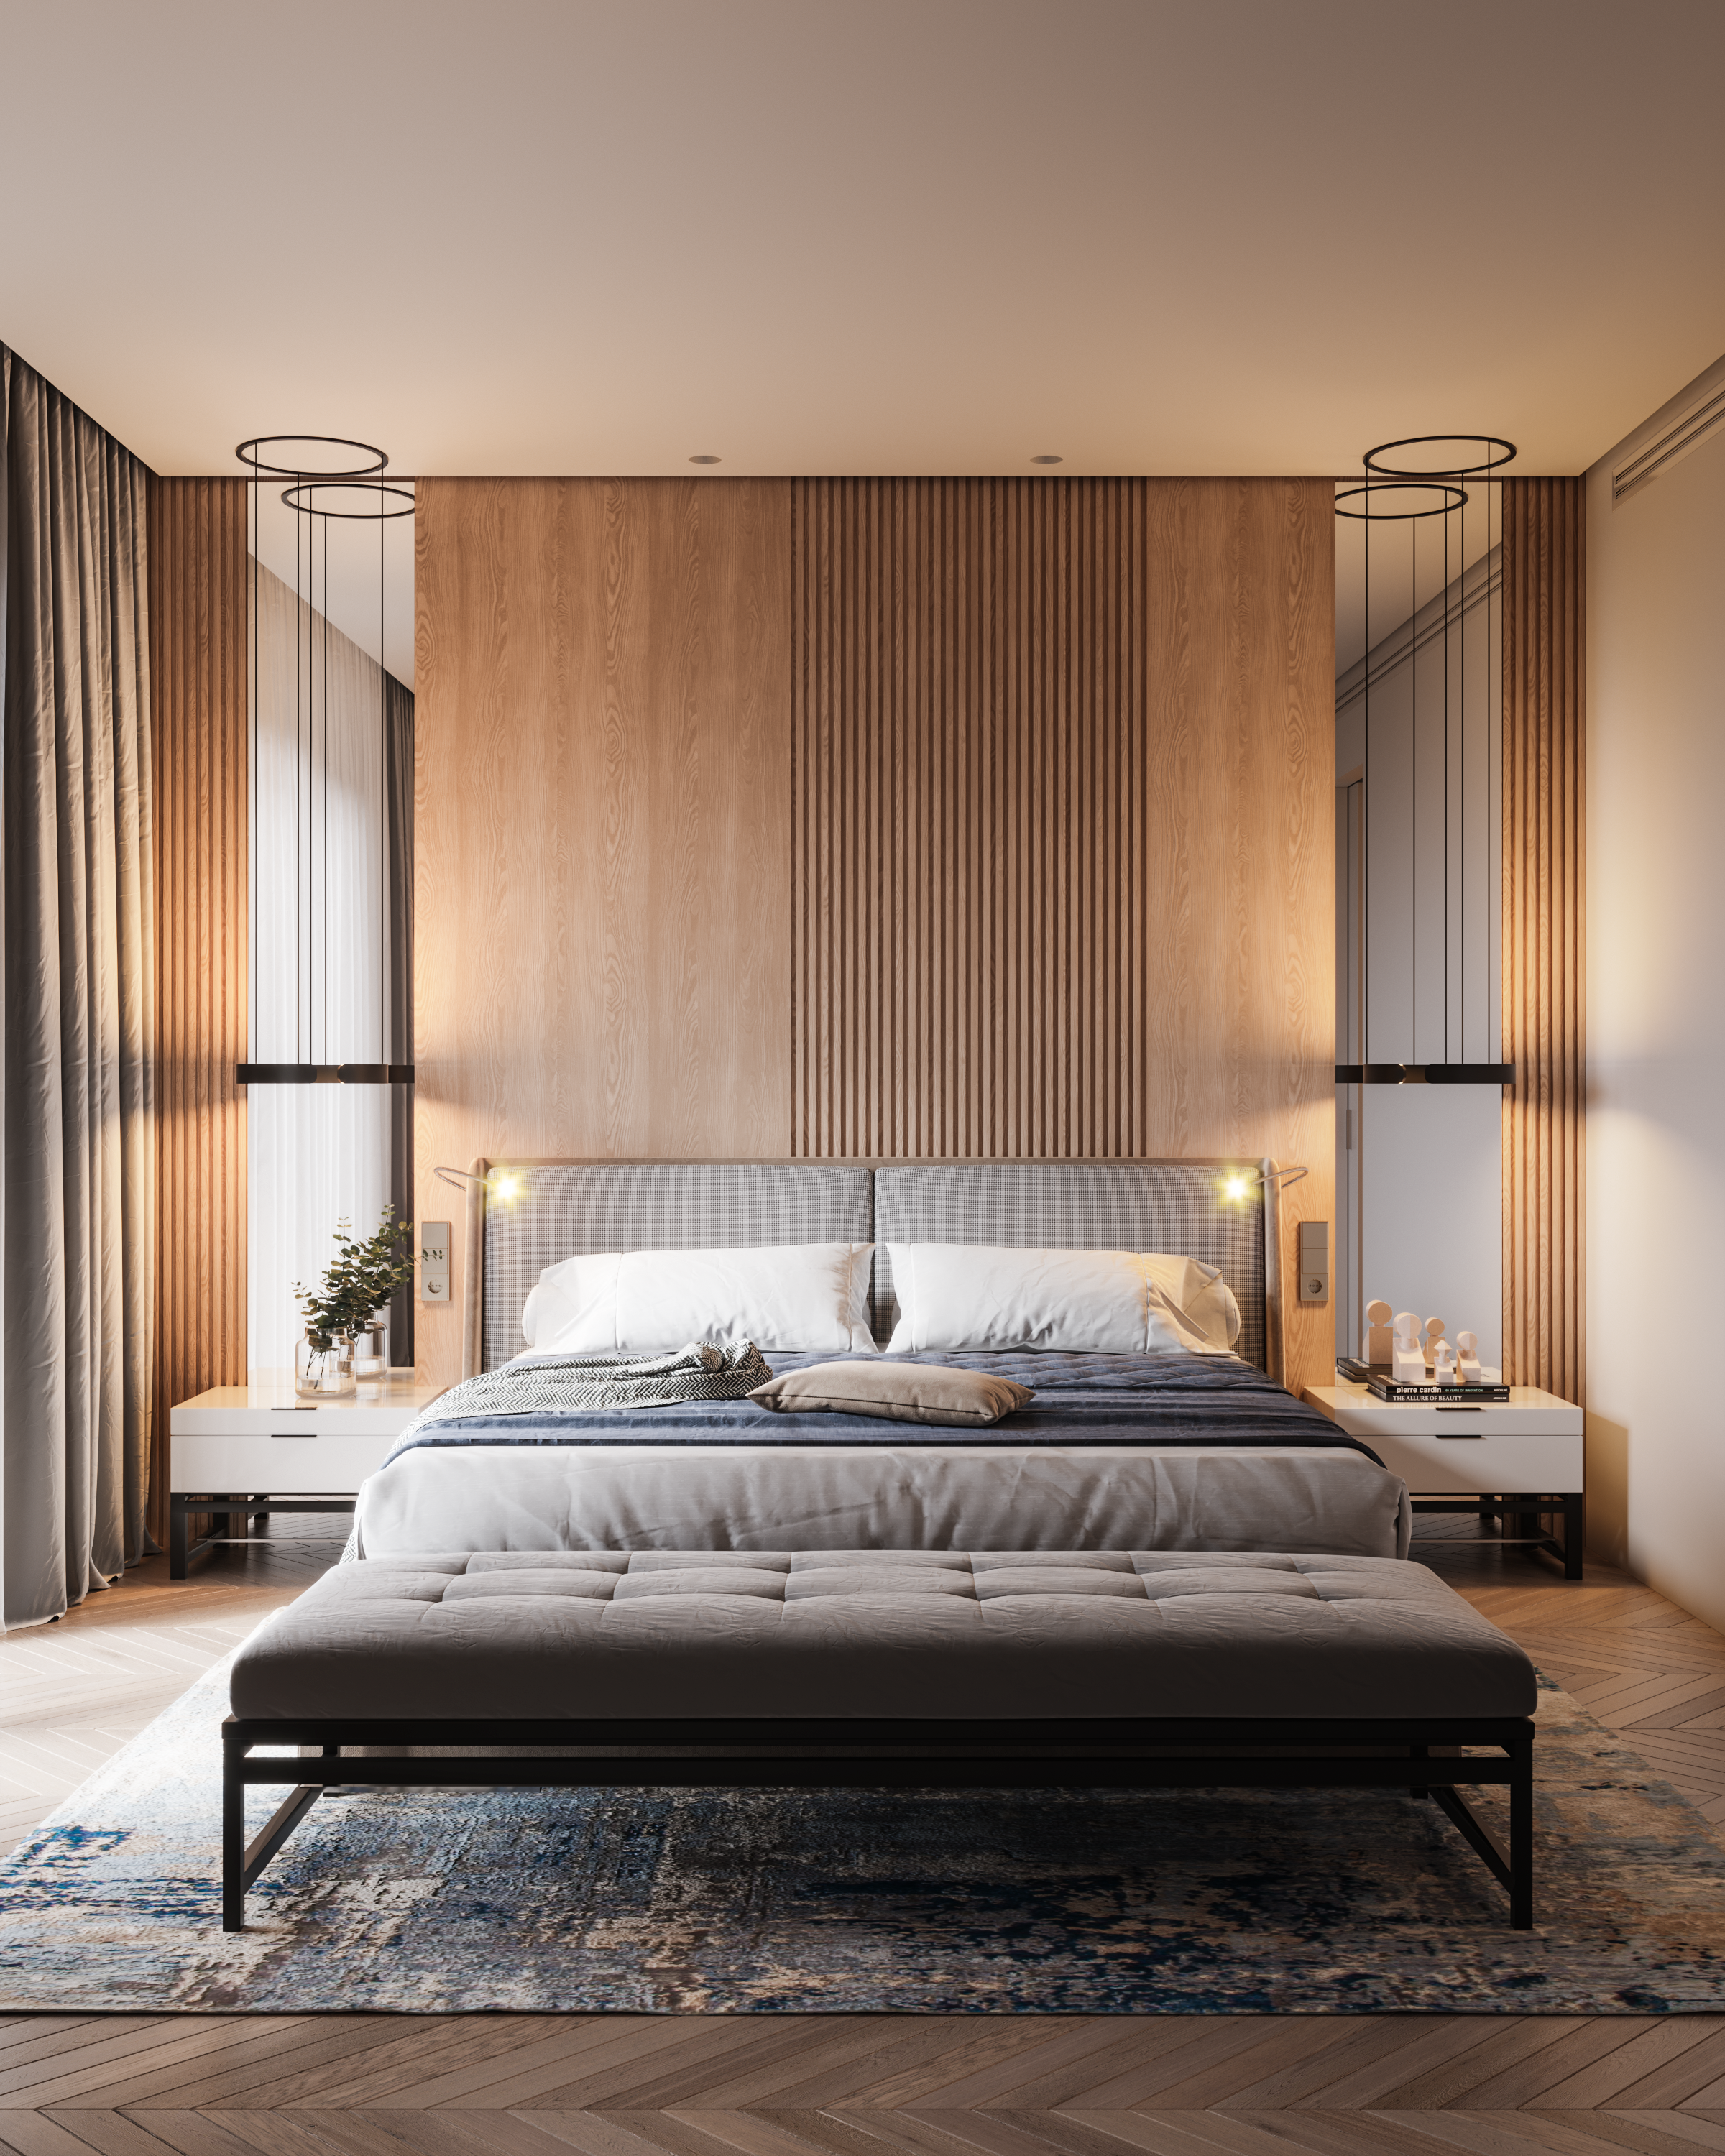 Bedroom In Contemporary Style On Behance: Рублево 3 On Behance In 2019